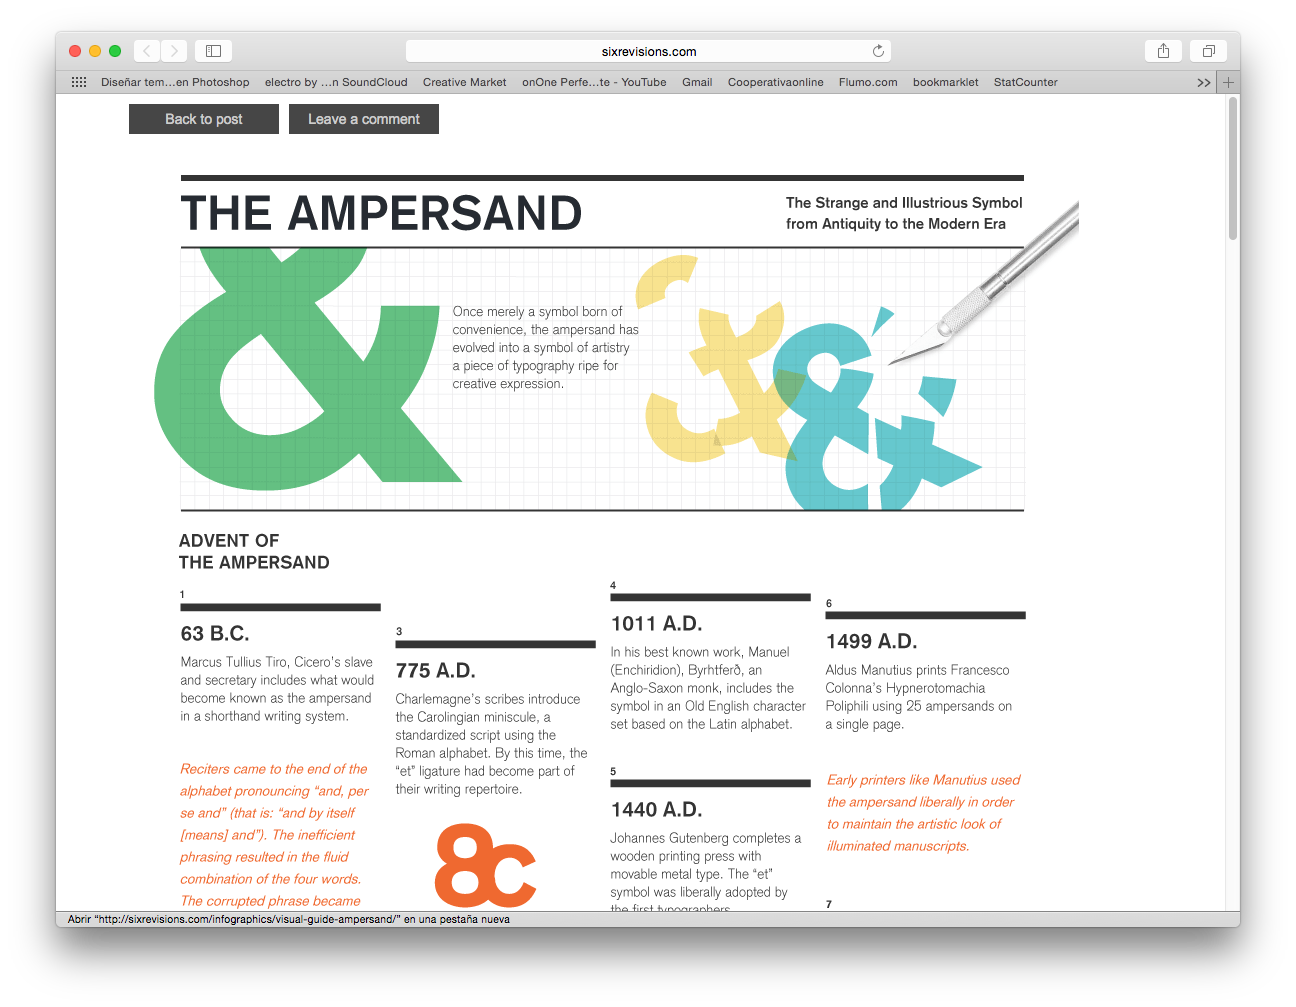 theampersand